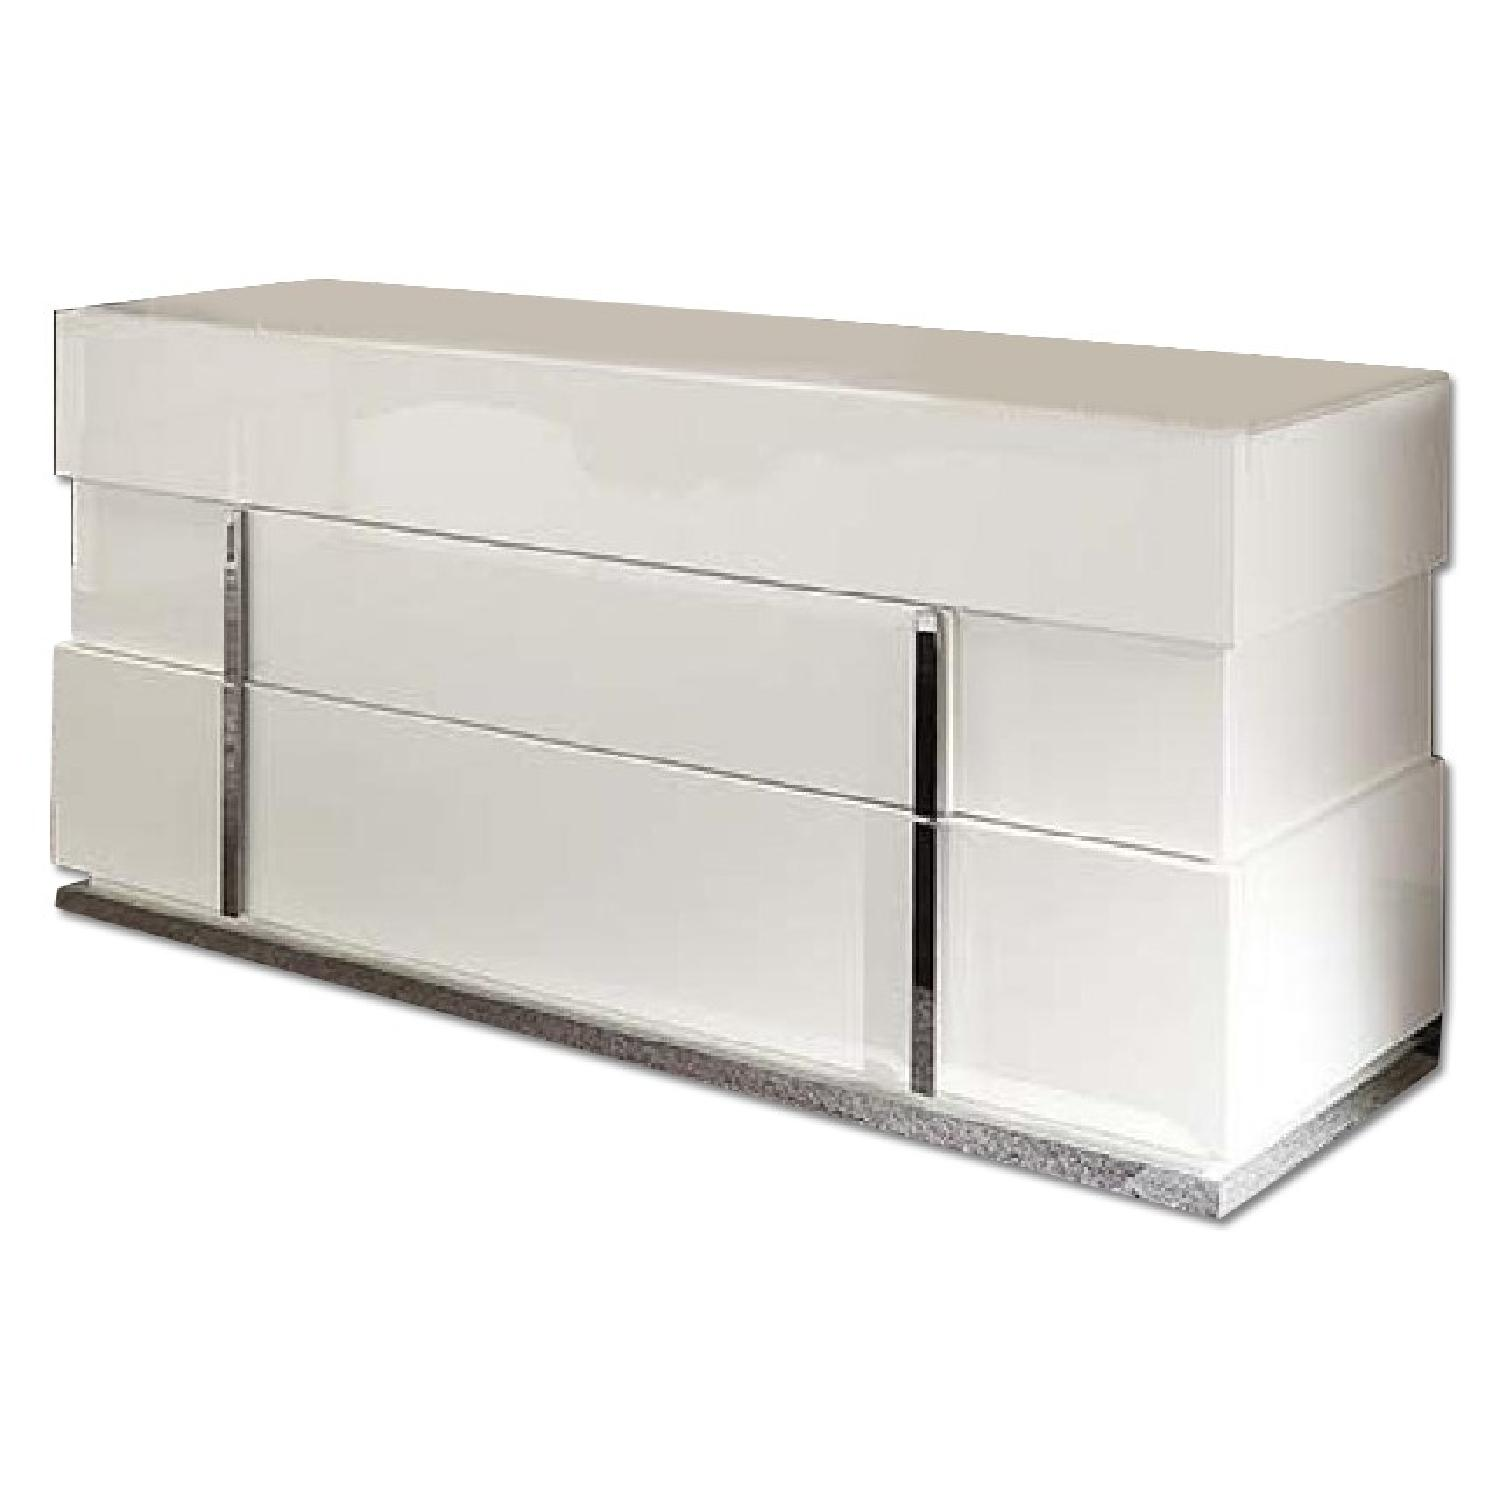 Alf Mystic White 6 Drawer Dresser w/ Mirror - 3 Available